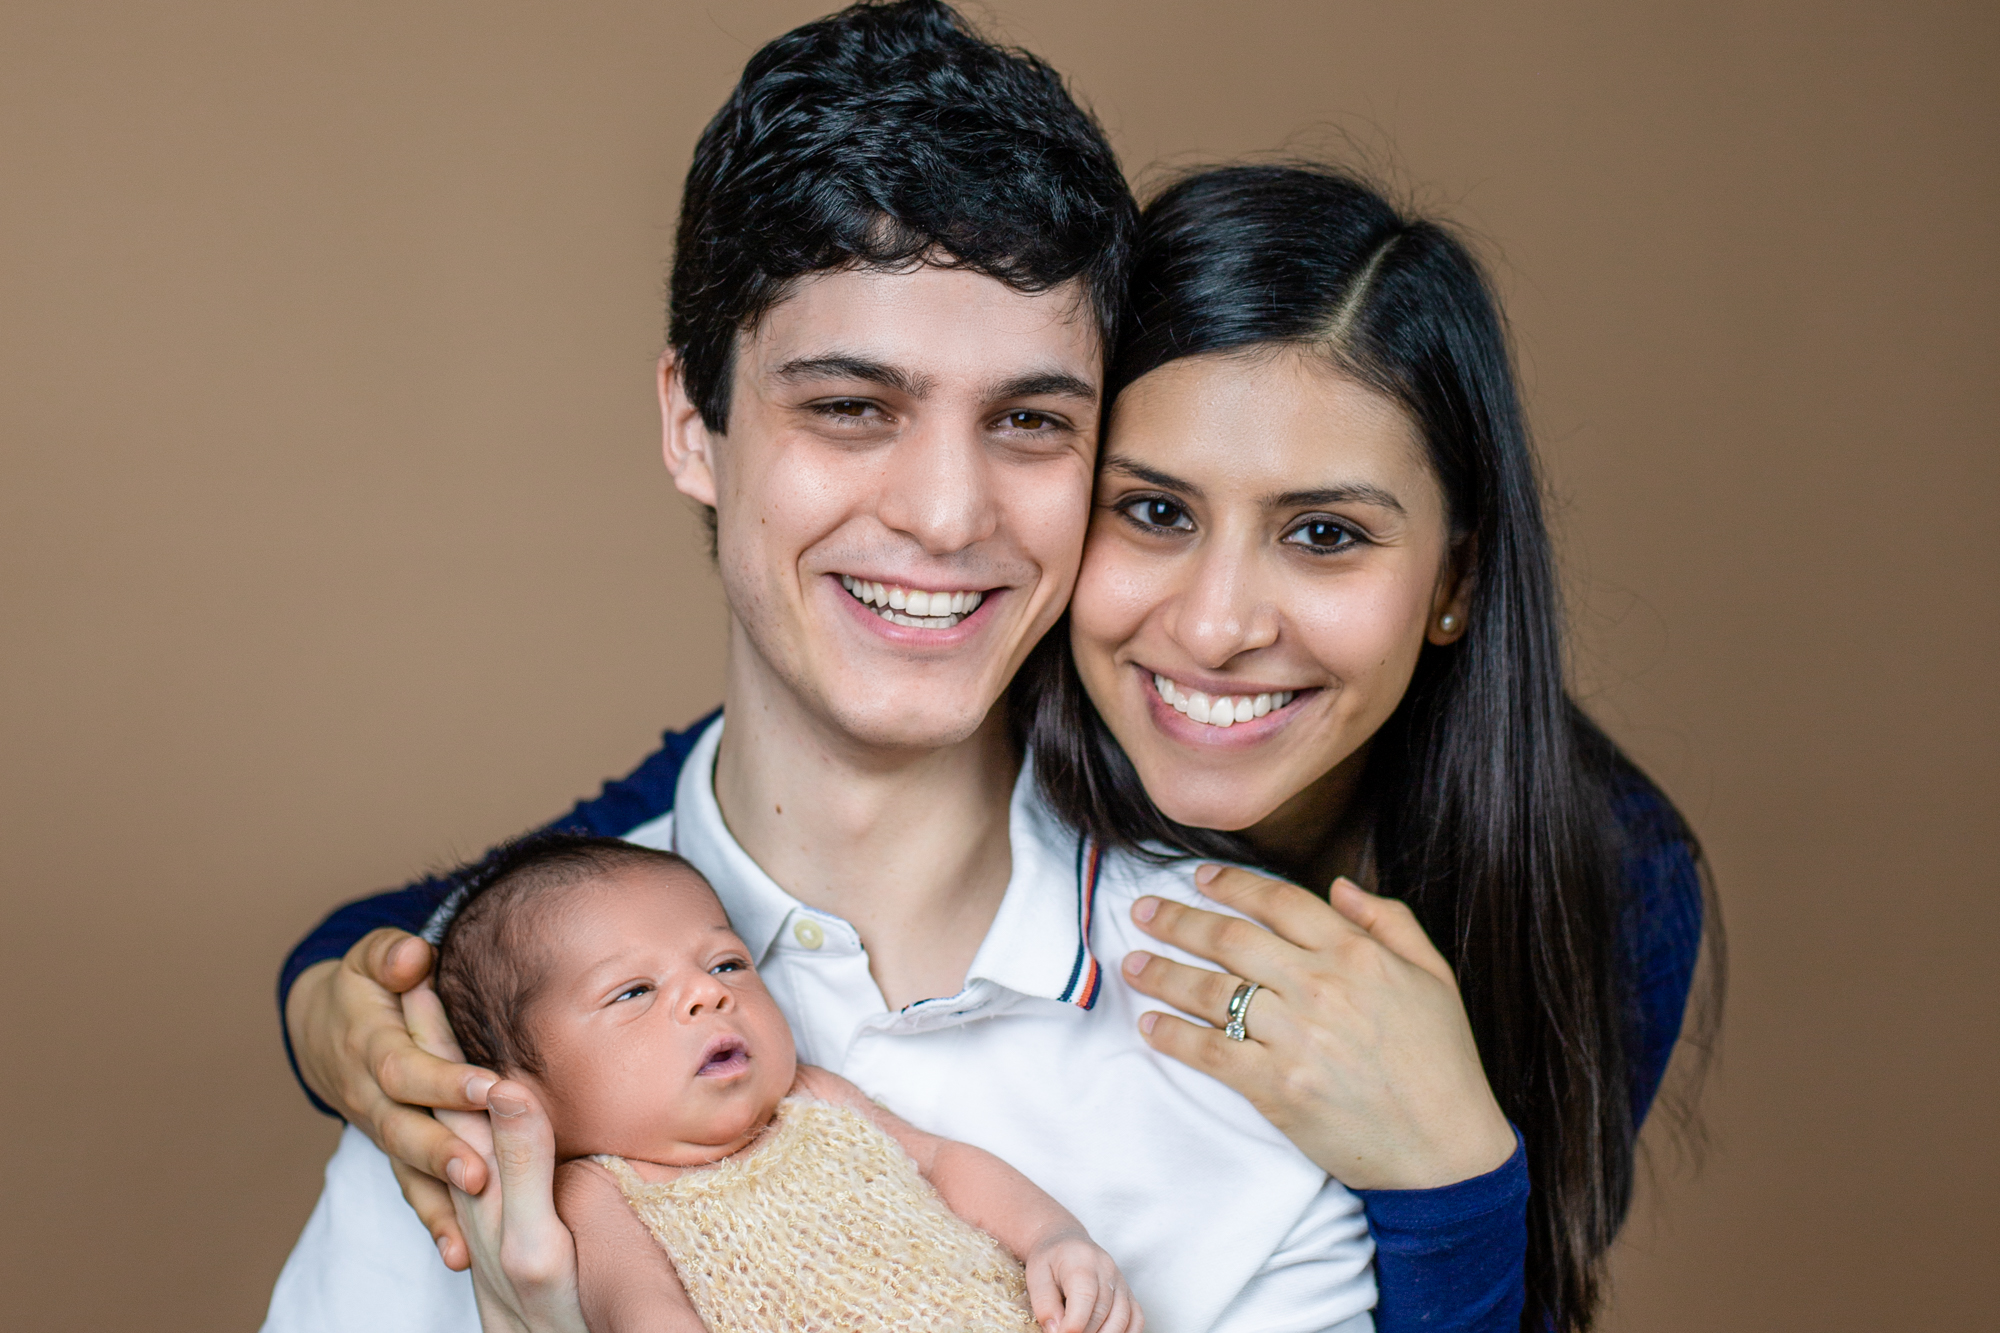 Newborn And Family Photo Session Combined. Win-Win!